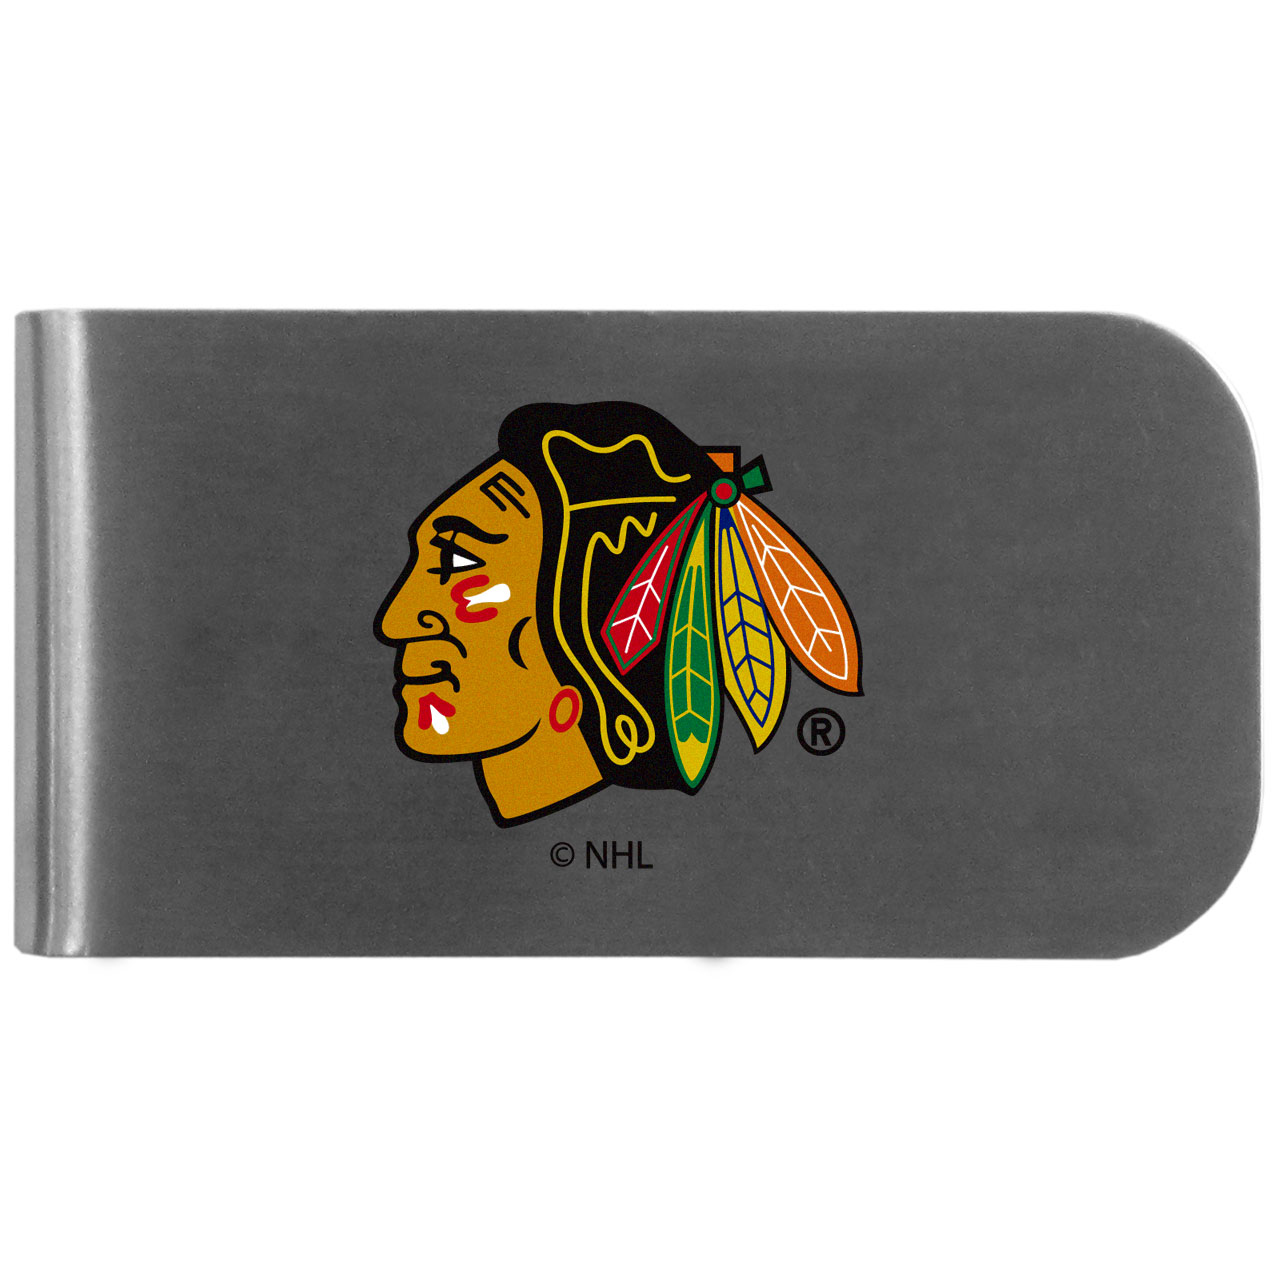 Chicago Blackhawks Logo Bottle Opener Money Clip - This unique money clip features a classic, brushed-metal finish with a handy bottle opener feature on the back. The clip has the Chicago Blackhawks logo expertly printed on the front of the clip.